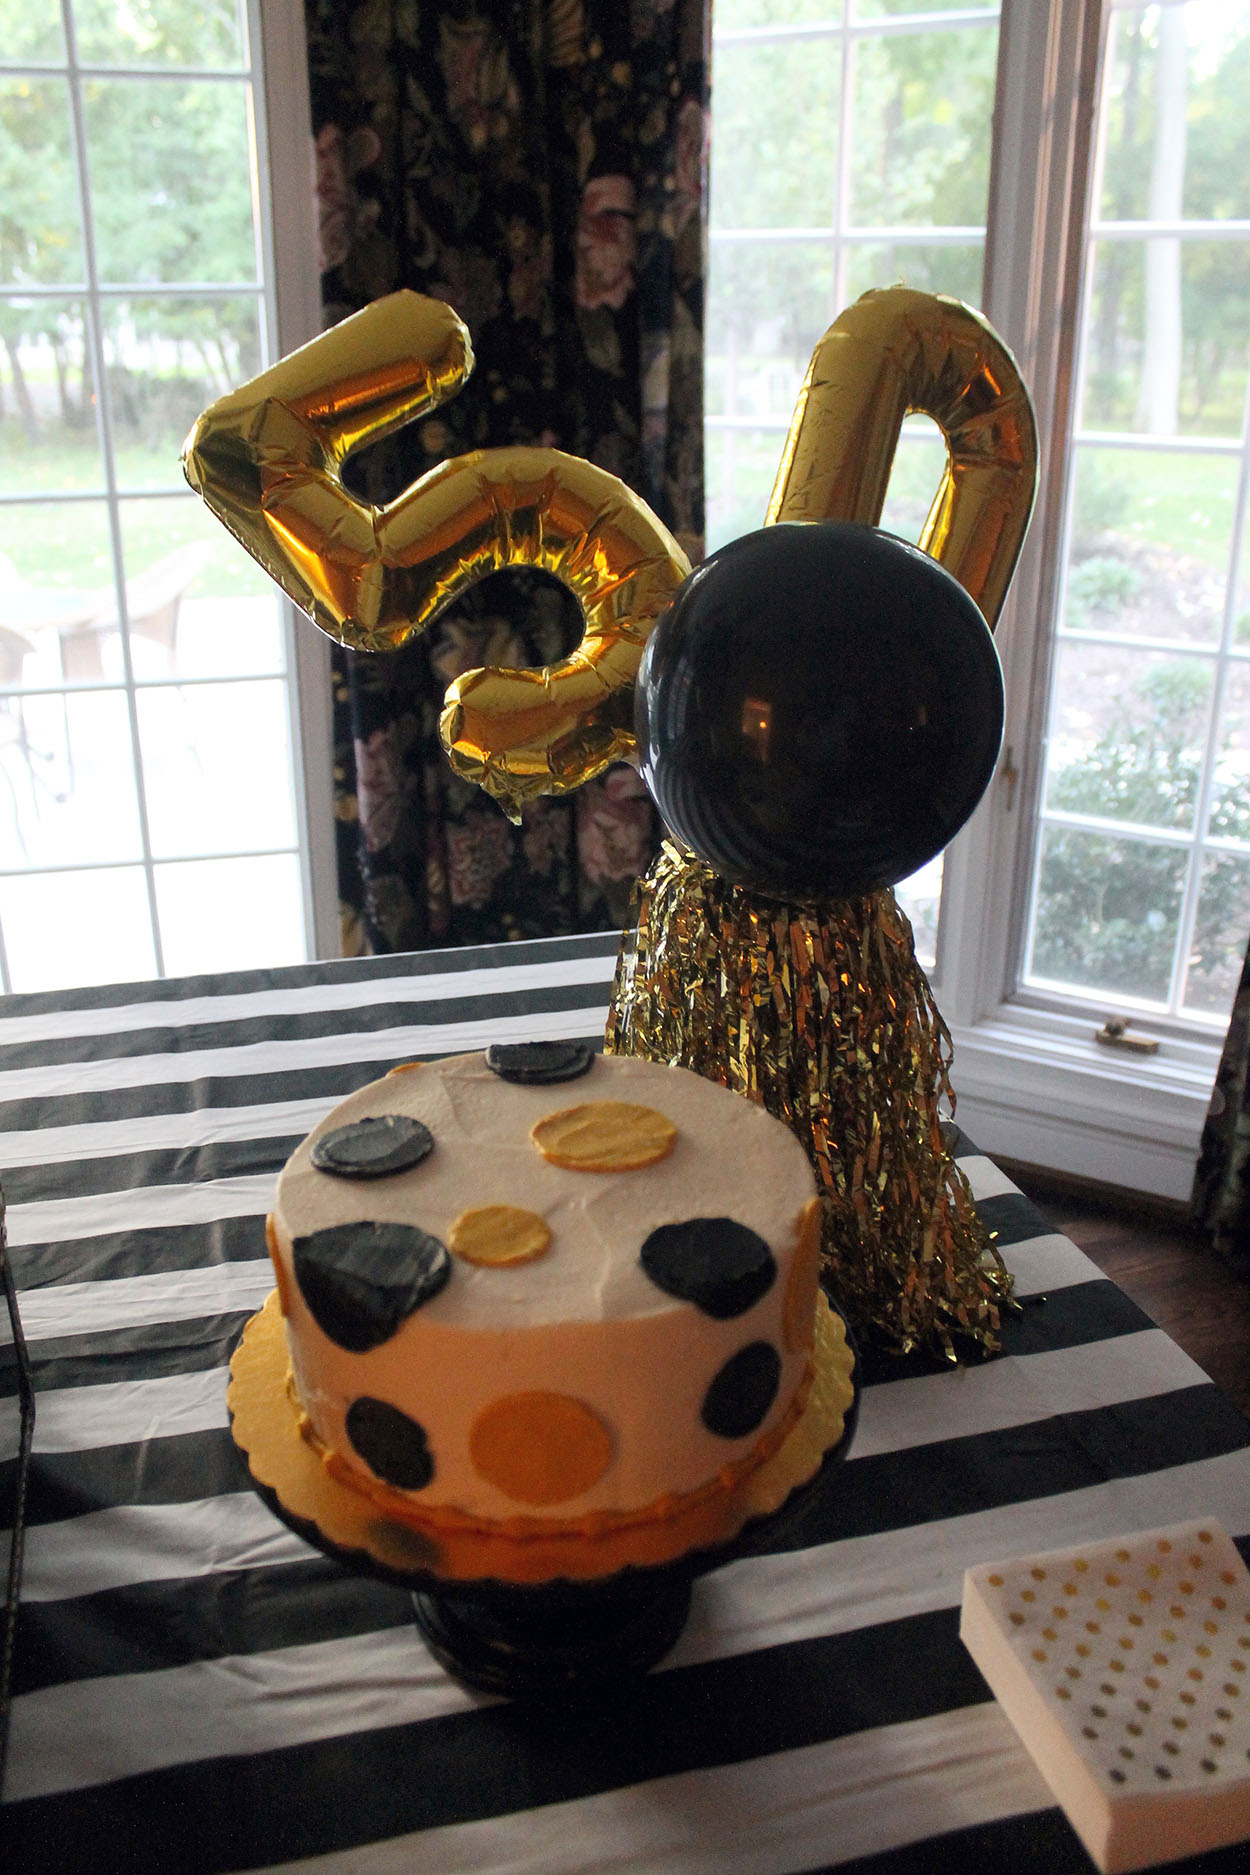 The Chandelier Over Table Was Decorated With Black White And Gold Poufs A Fun Touch To Add More Of Those Colors Cake Display